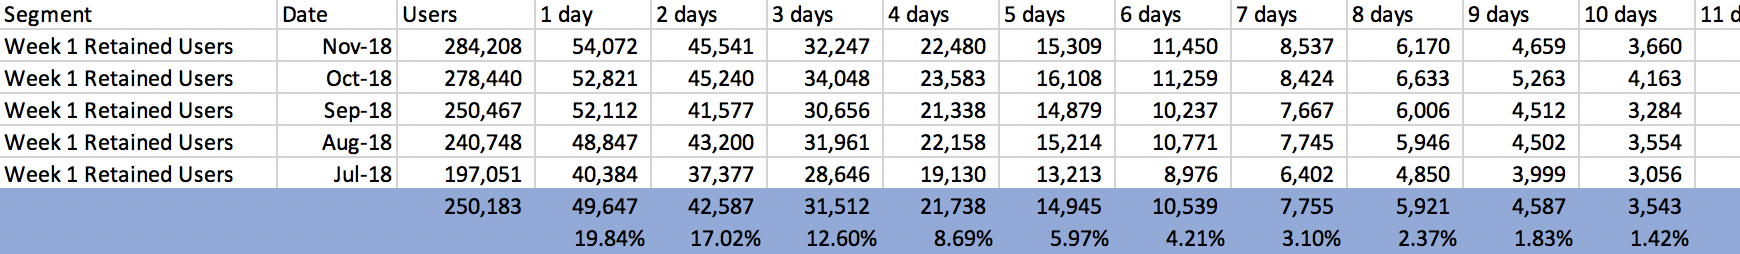 average of each column to find the number of users who engaged with the app